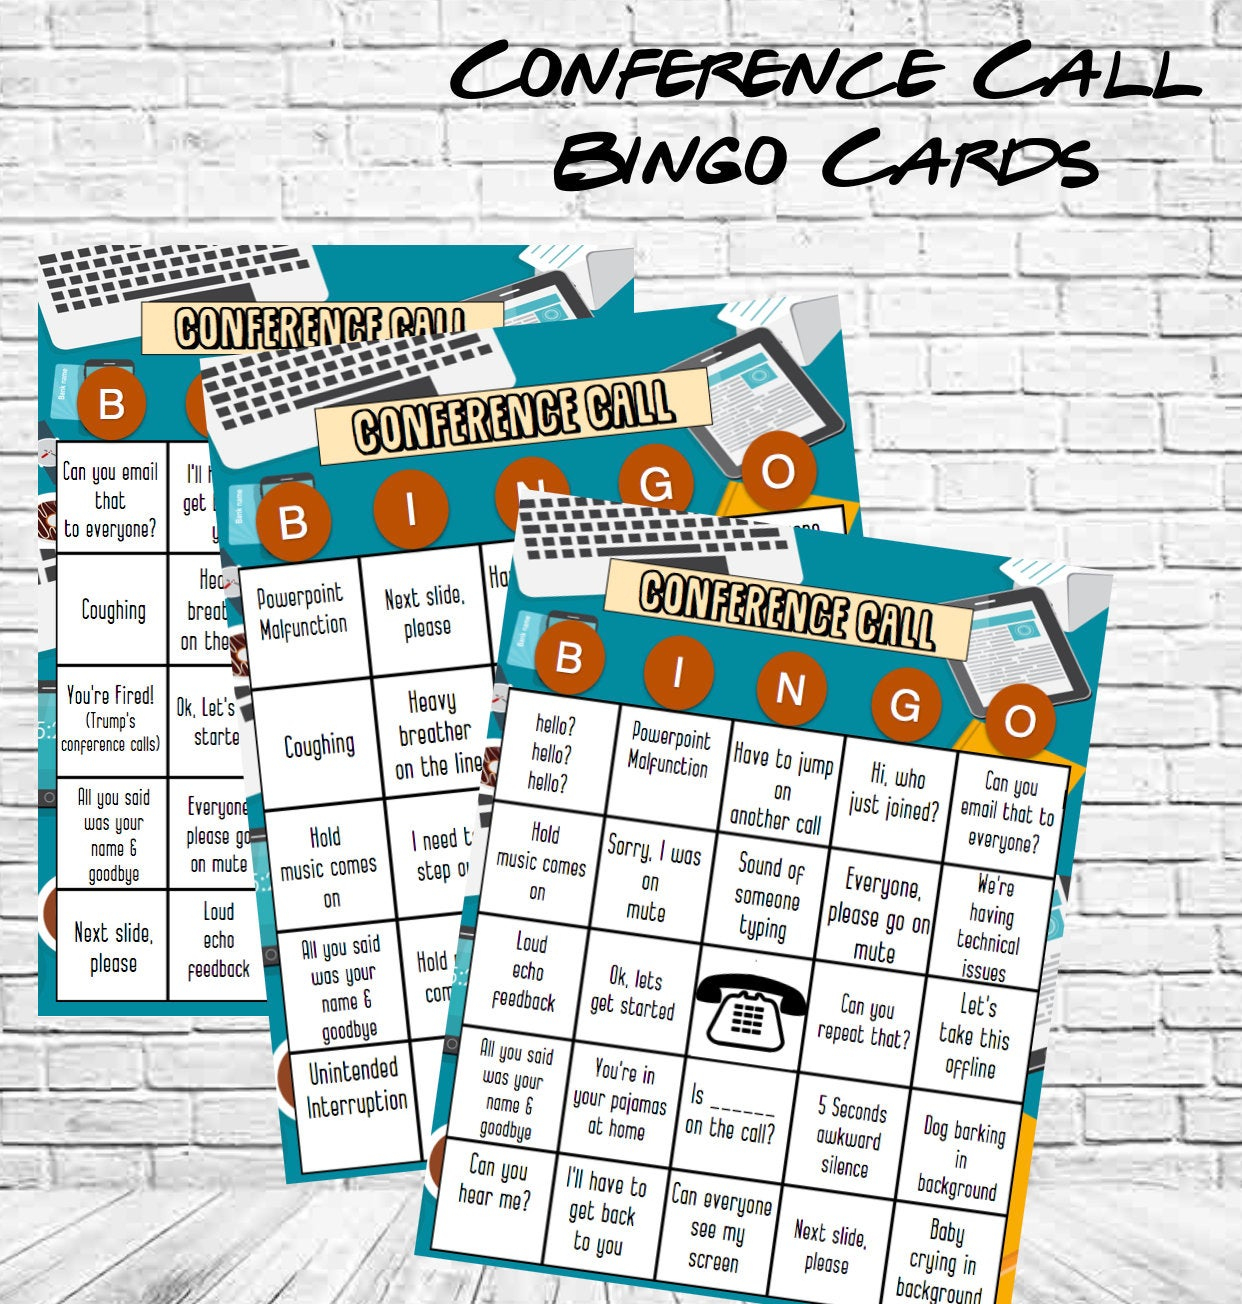 Company Conference Call Bingo Cards   Retirement Party Bingo Game    Conference Call Bingo Game   Instant Download For An Office Party!